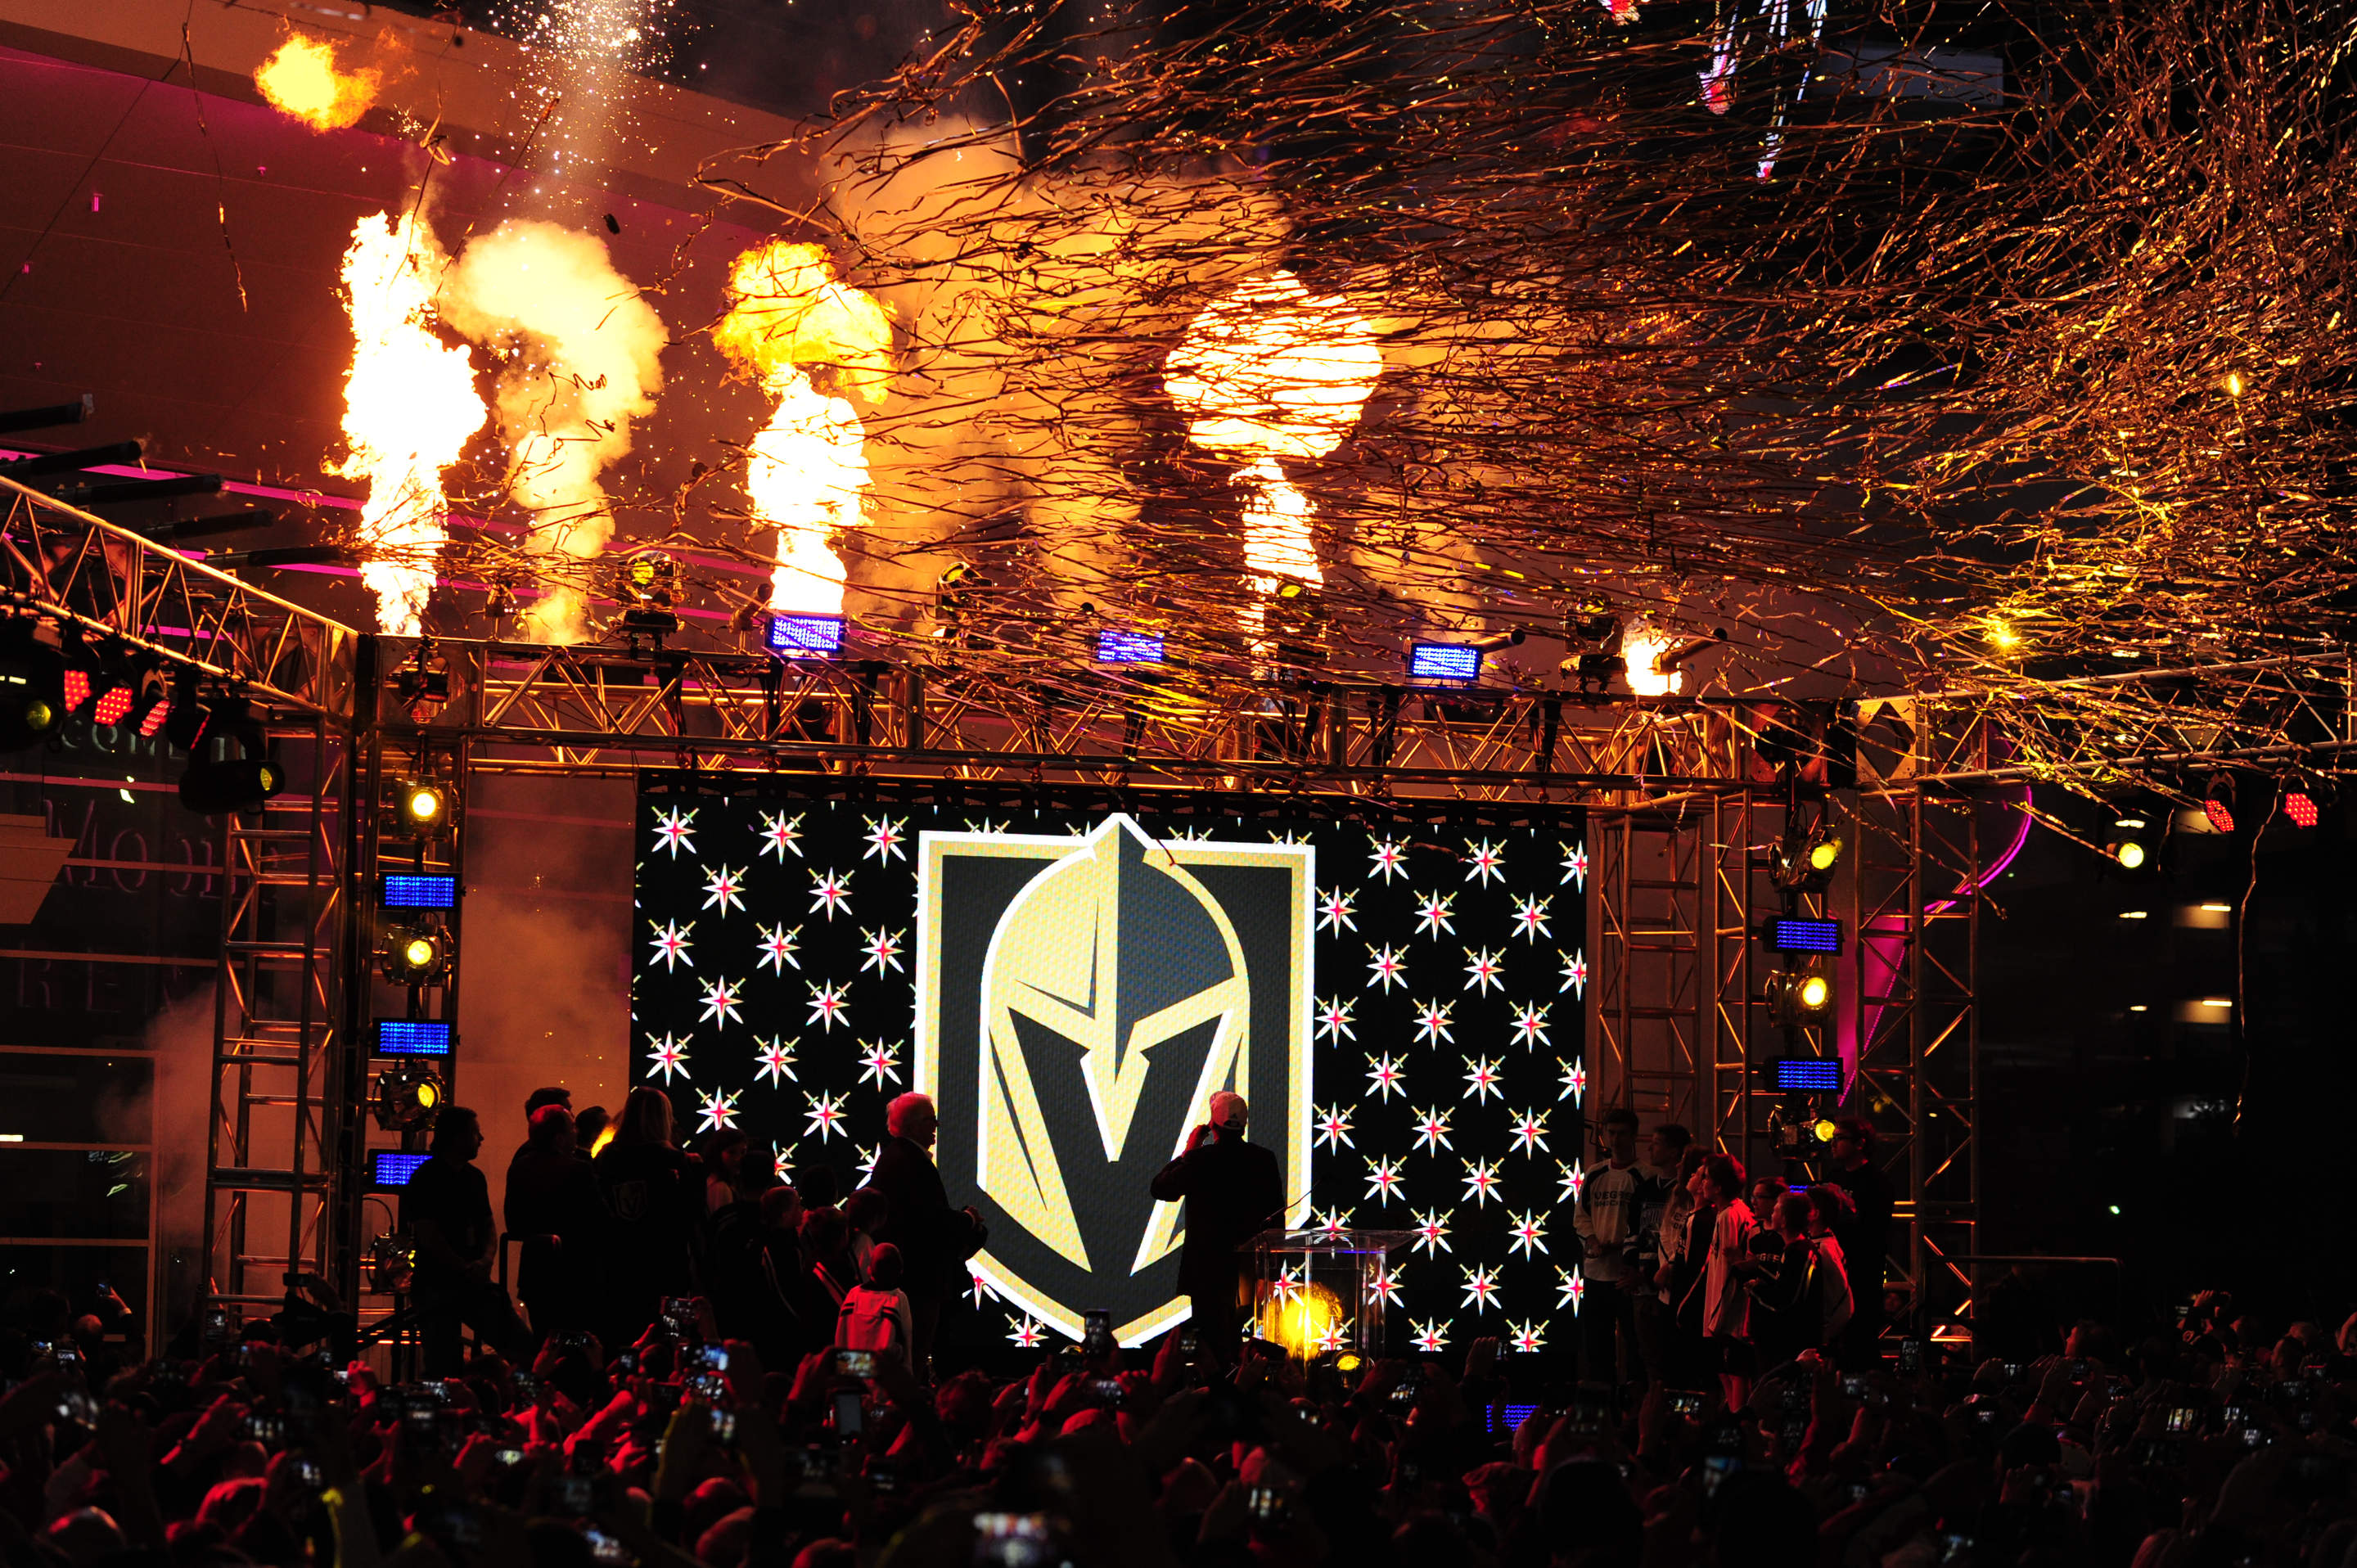 Las Vegas Golden Knights: Will they be taken seriously